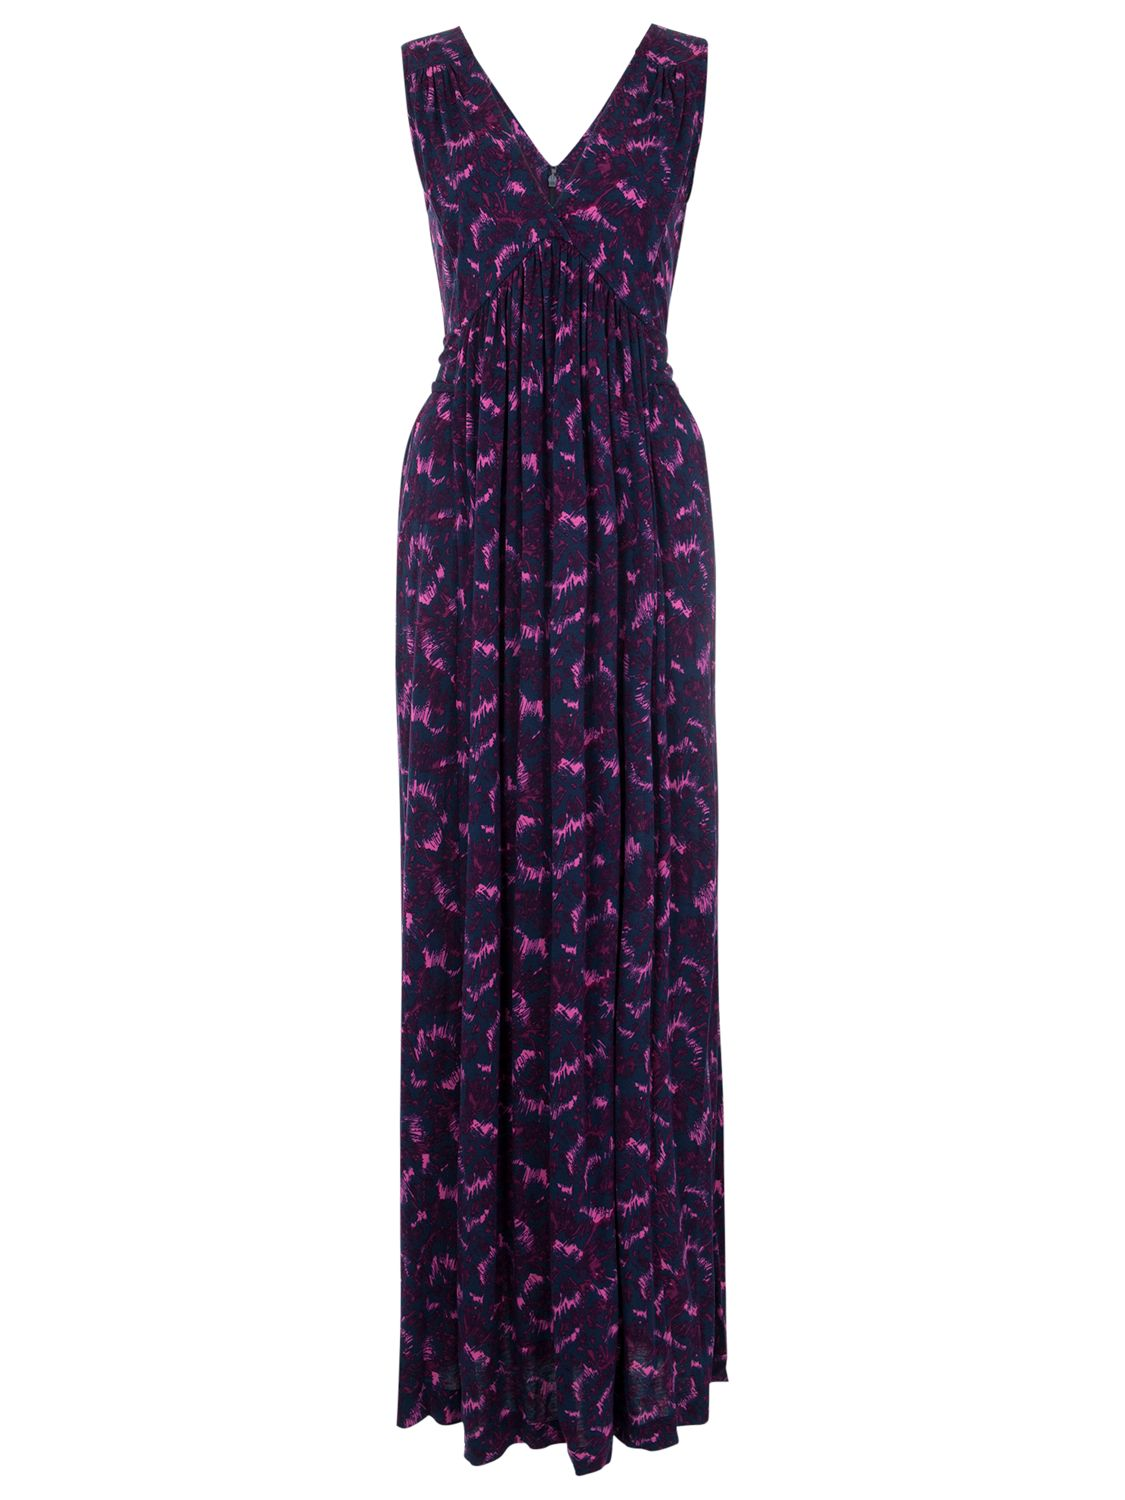 french connection rhodeo flower print maxi dress multi, french, connection, rhodeo, flower, print, maxi, dress, multi, french connection, 10|14|8|12|6, women, womens holiday shop, dresses, womens dresses, maxi dresses, 1527420